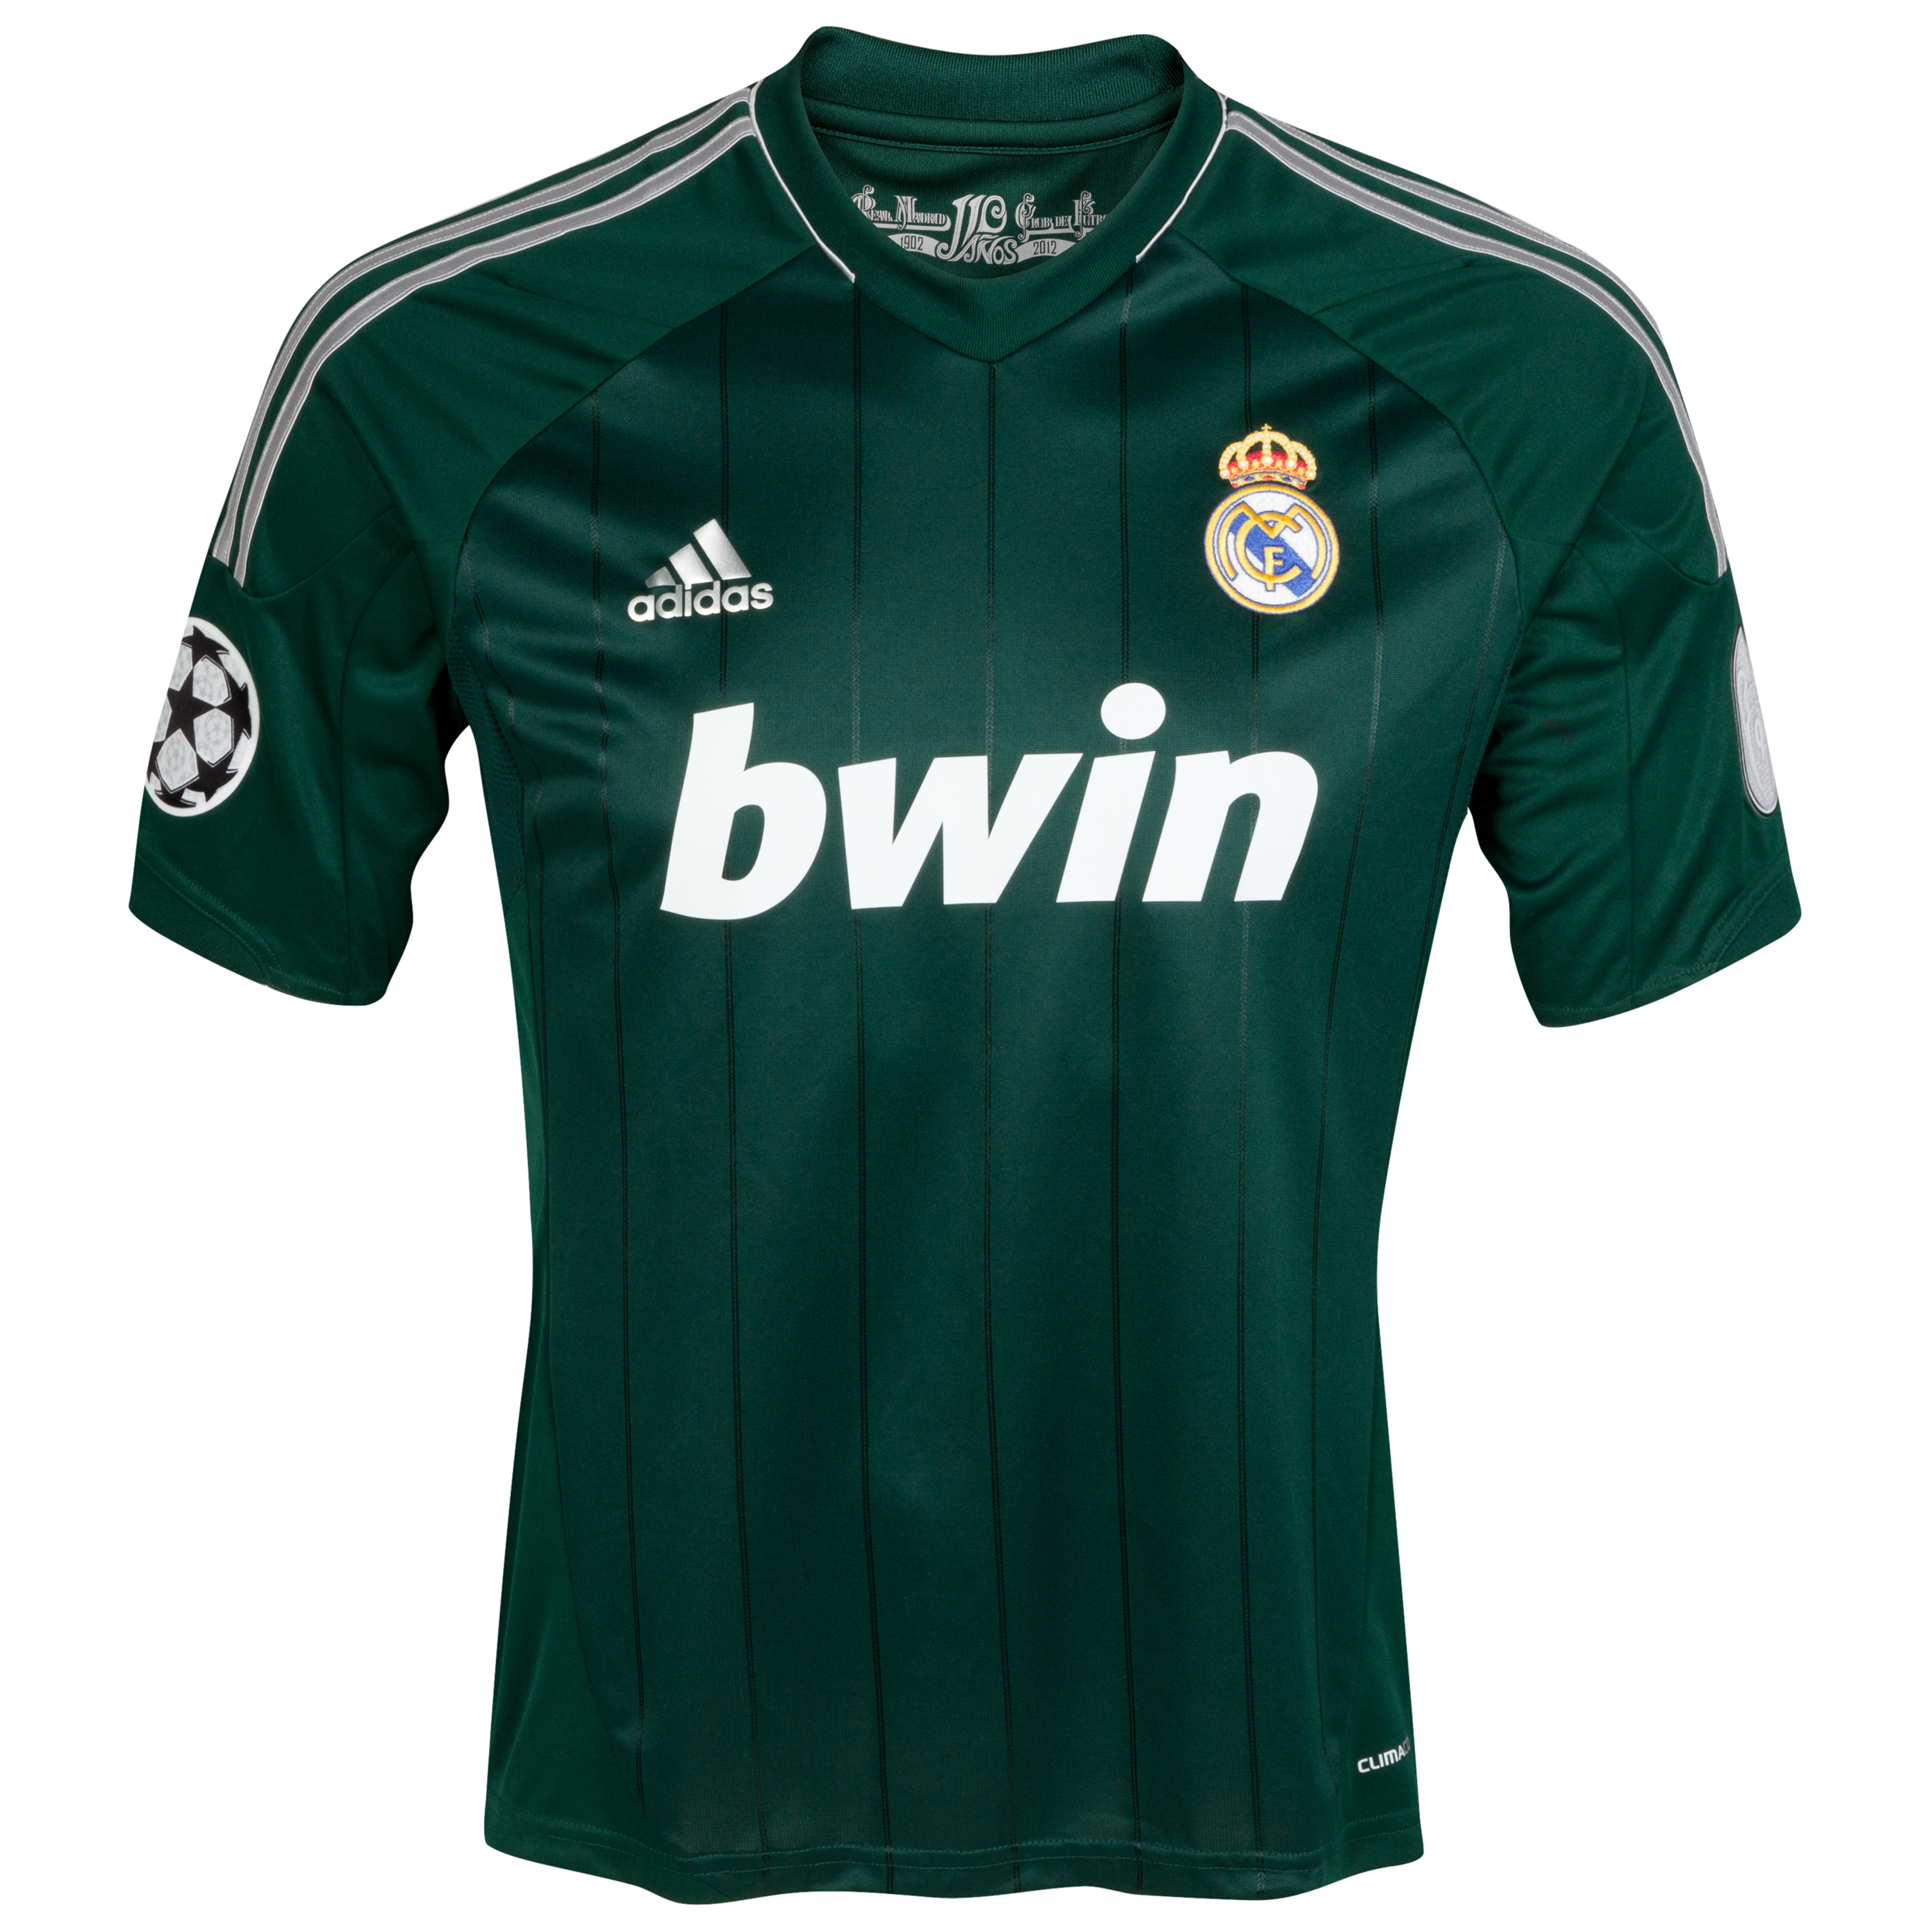 Real Madrid UEFA Champions League Third Shirt 2012/13 Kids